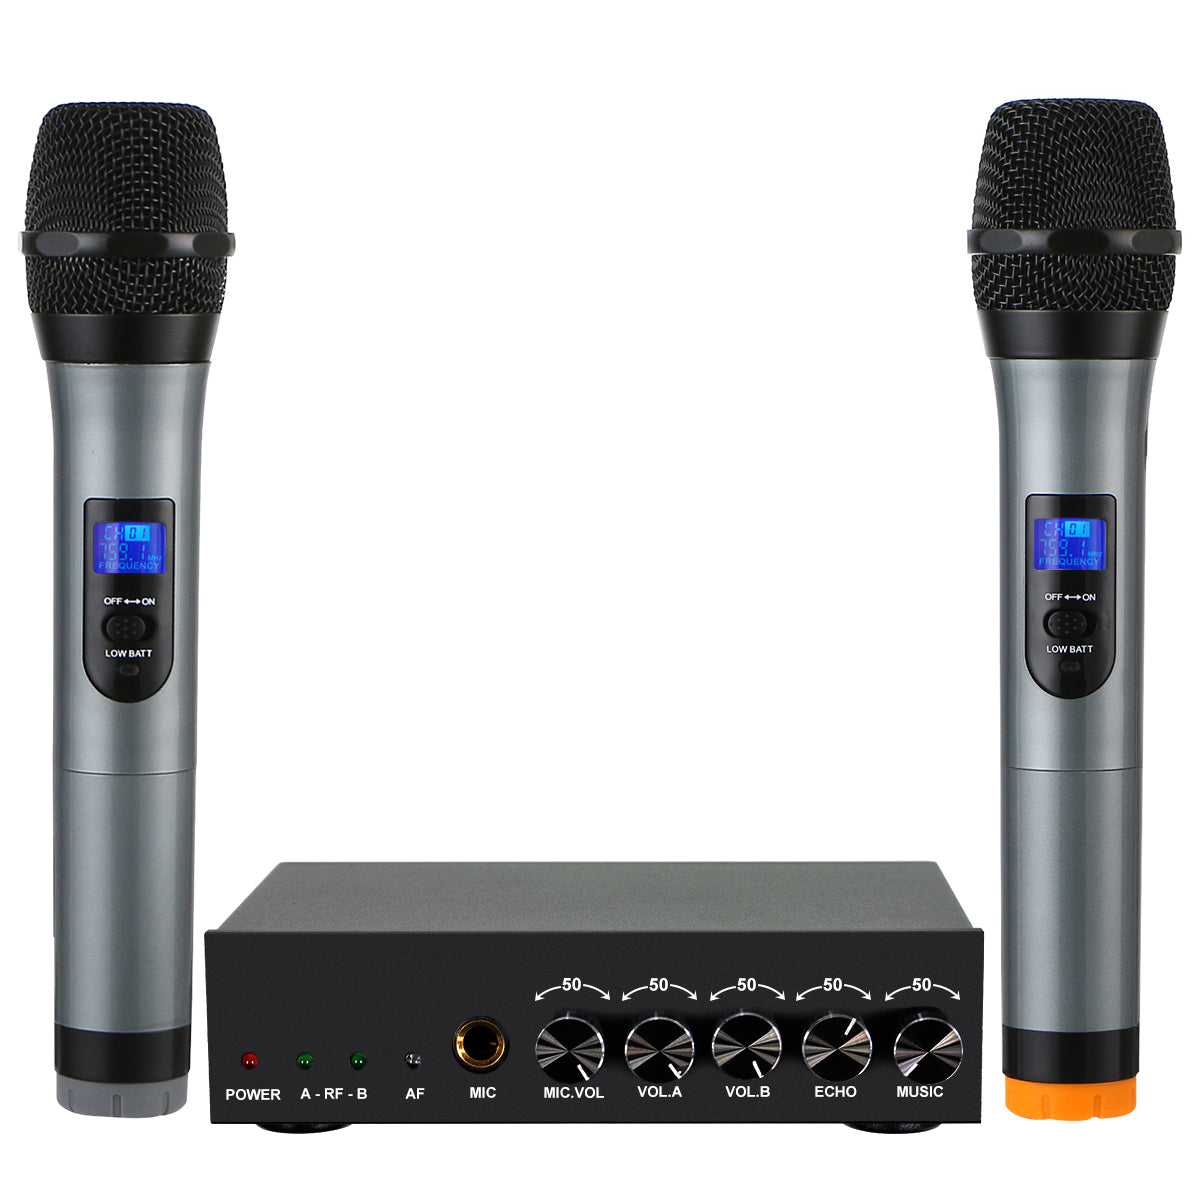 Bluetooth Wireless Handheld Microphone System Home Karaoke Kit